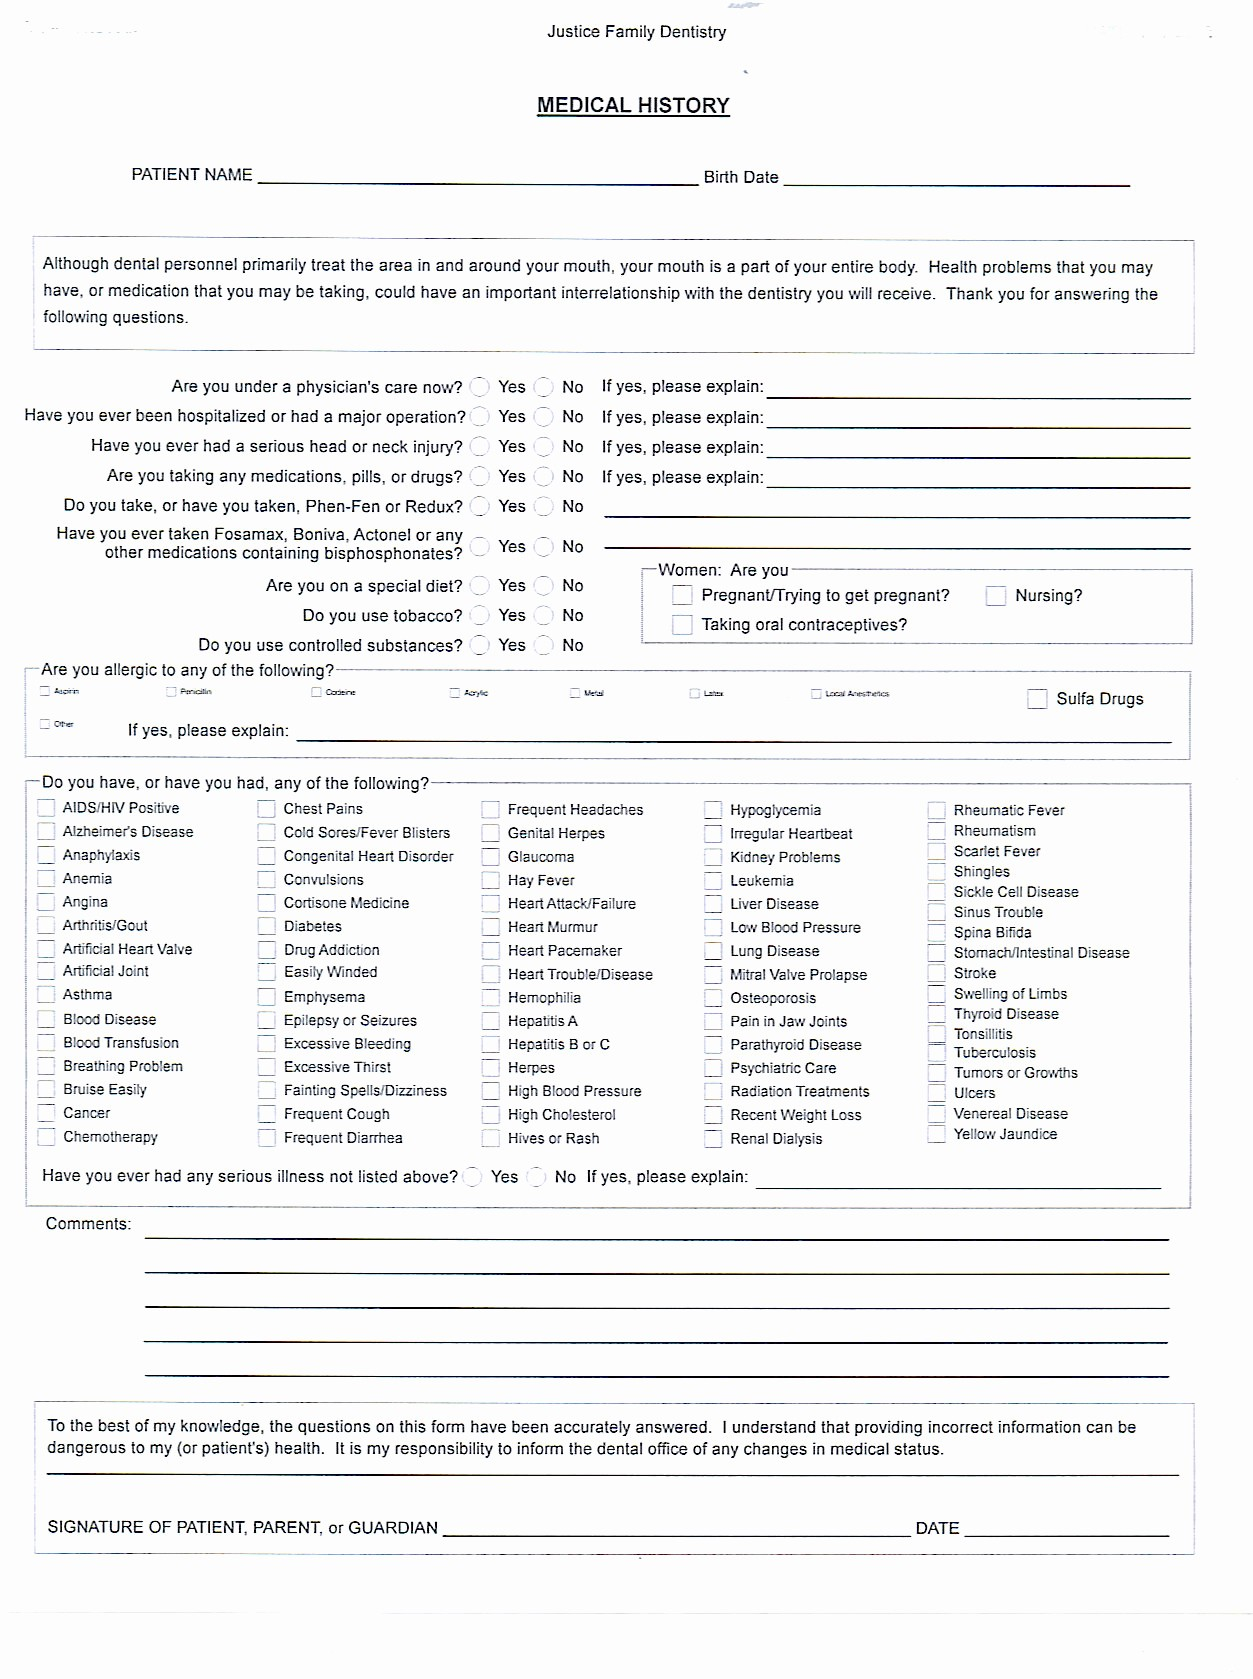 Medical History form Template Pdf New Medical History form Template Pdf – Medical form Templates